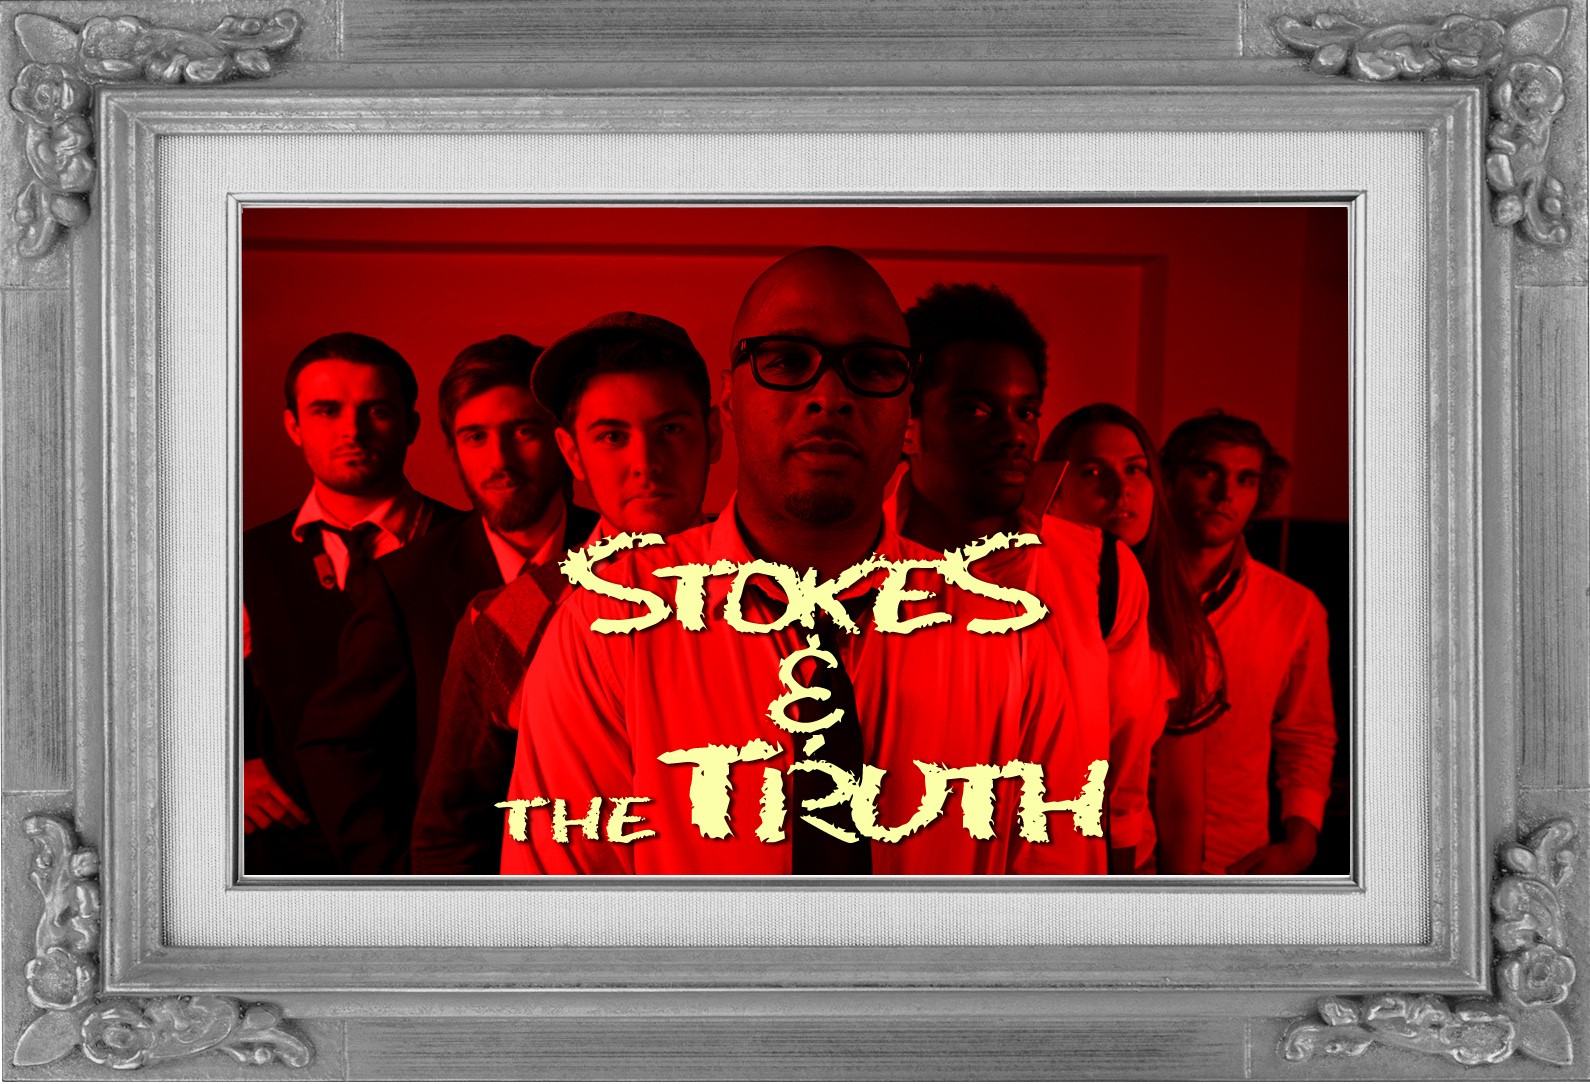 StokeS and the Truth